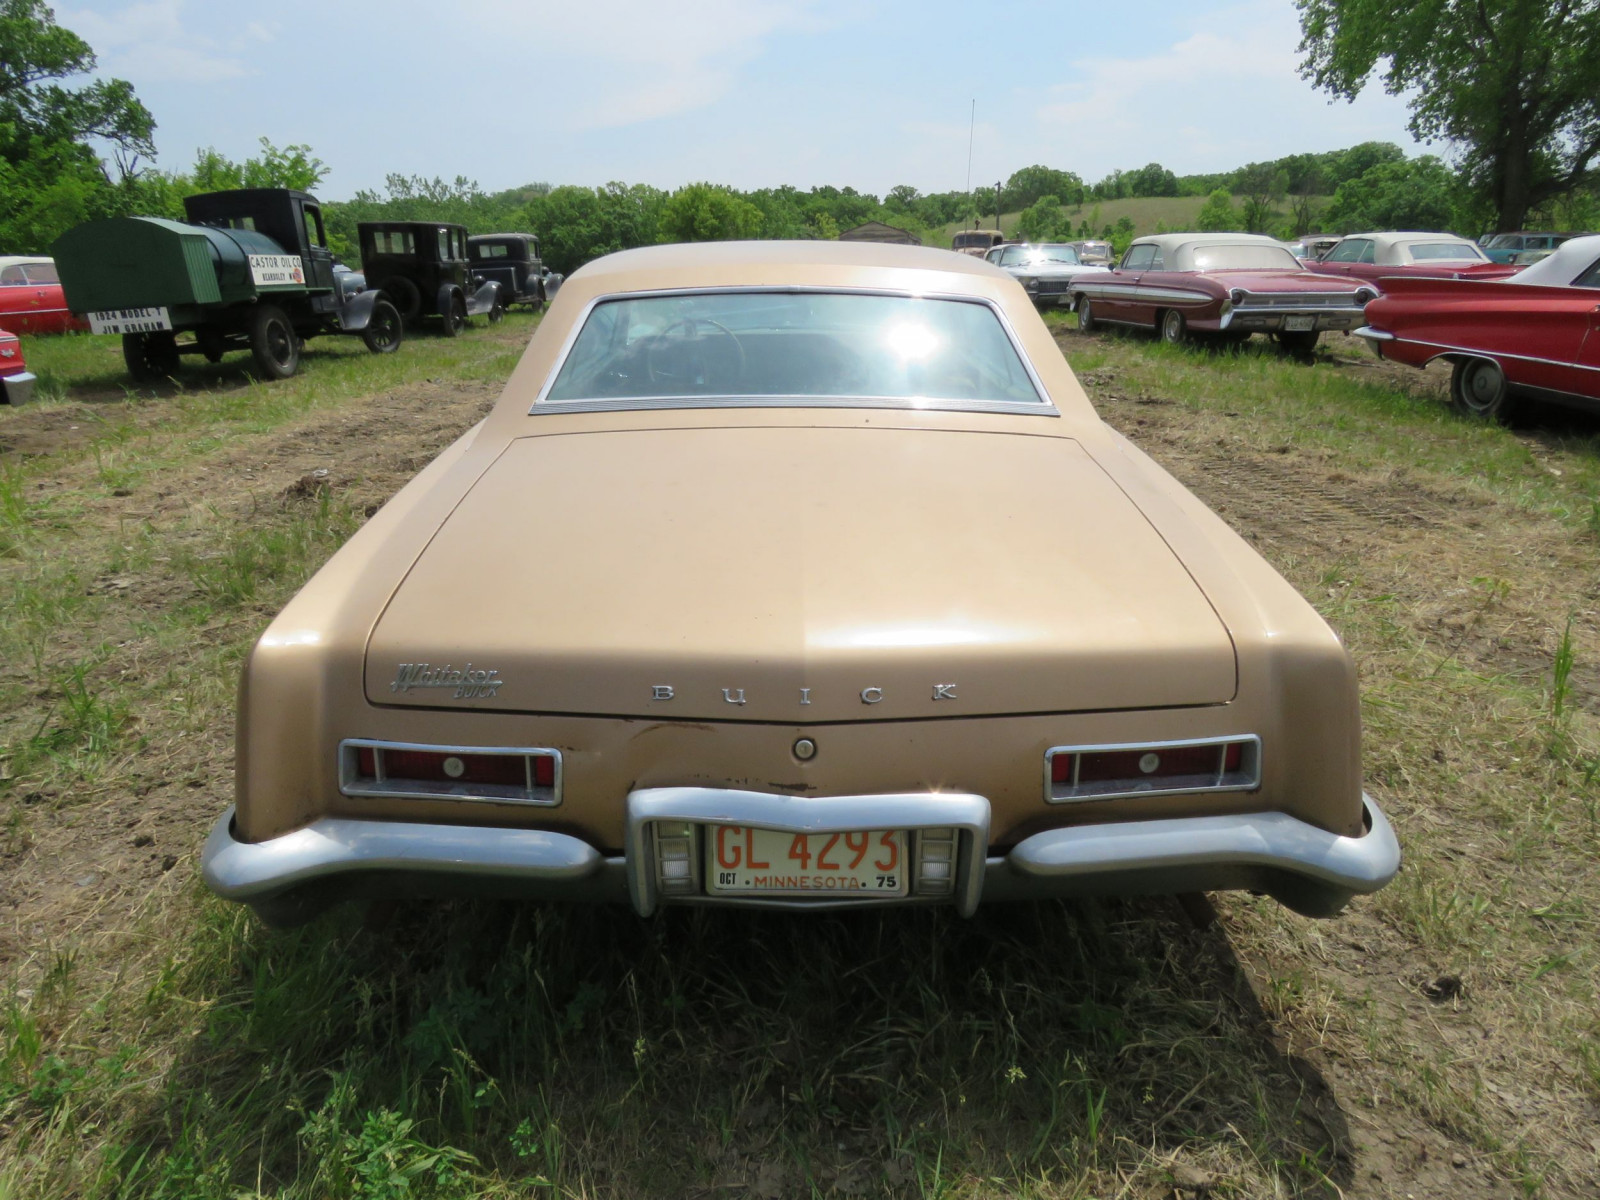 1967 Buick Riviera Coupe 7J1057263 - Image 6